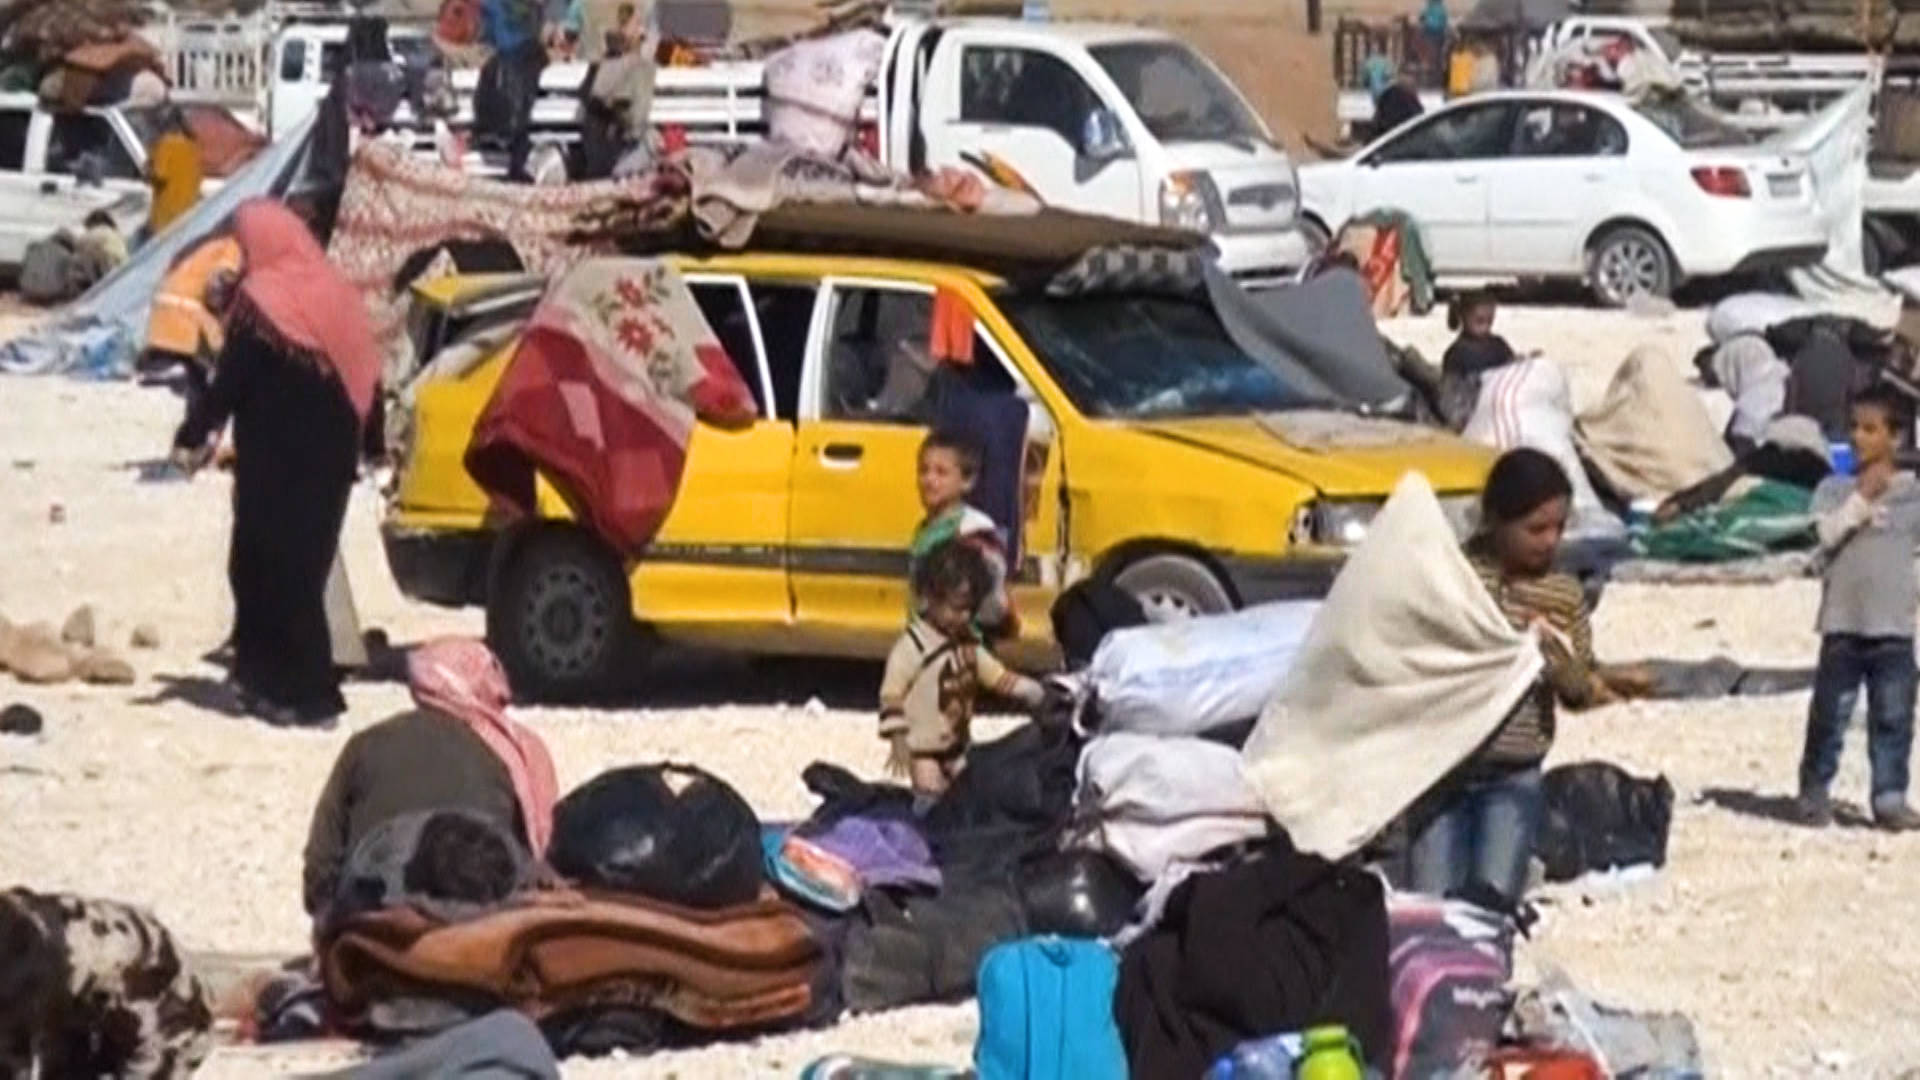 Syria: Nearly 1 Million People Internally Displaced During First 4 Months of 2018